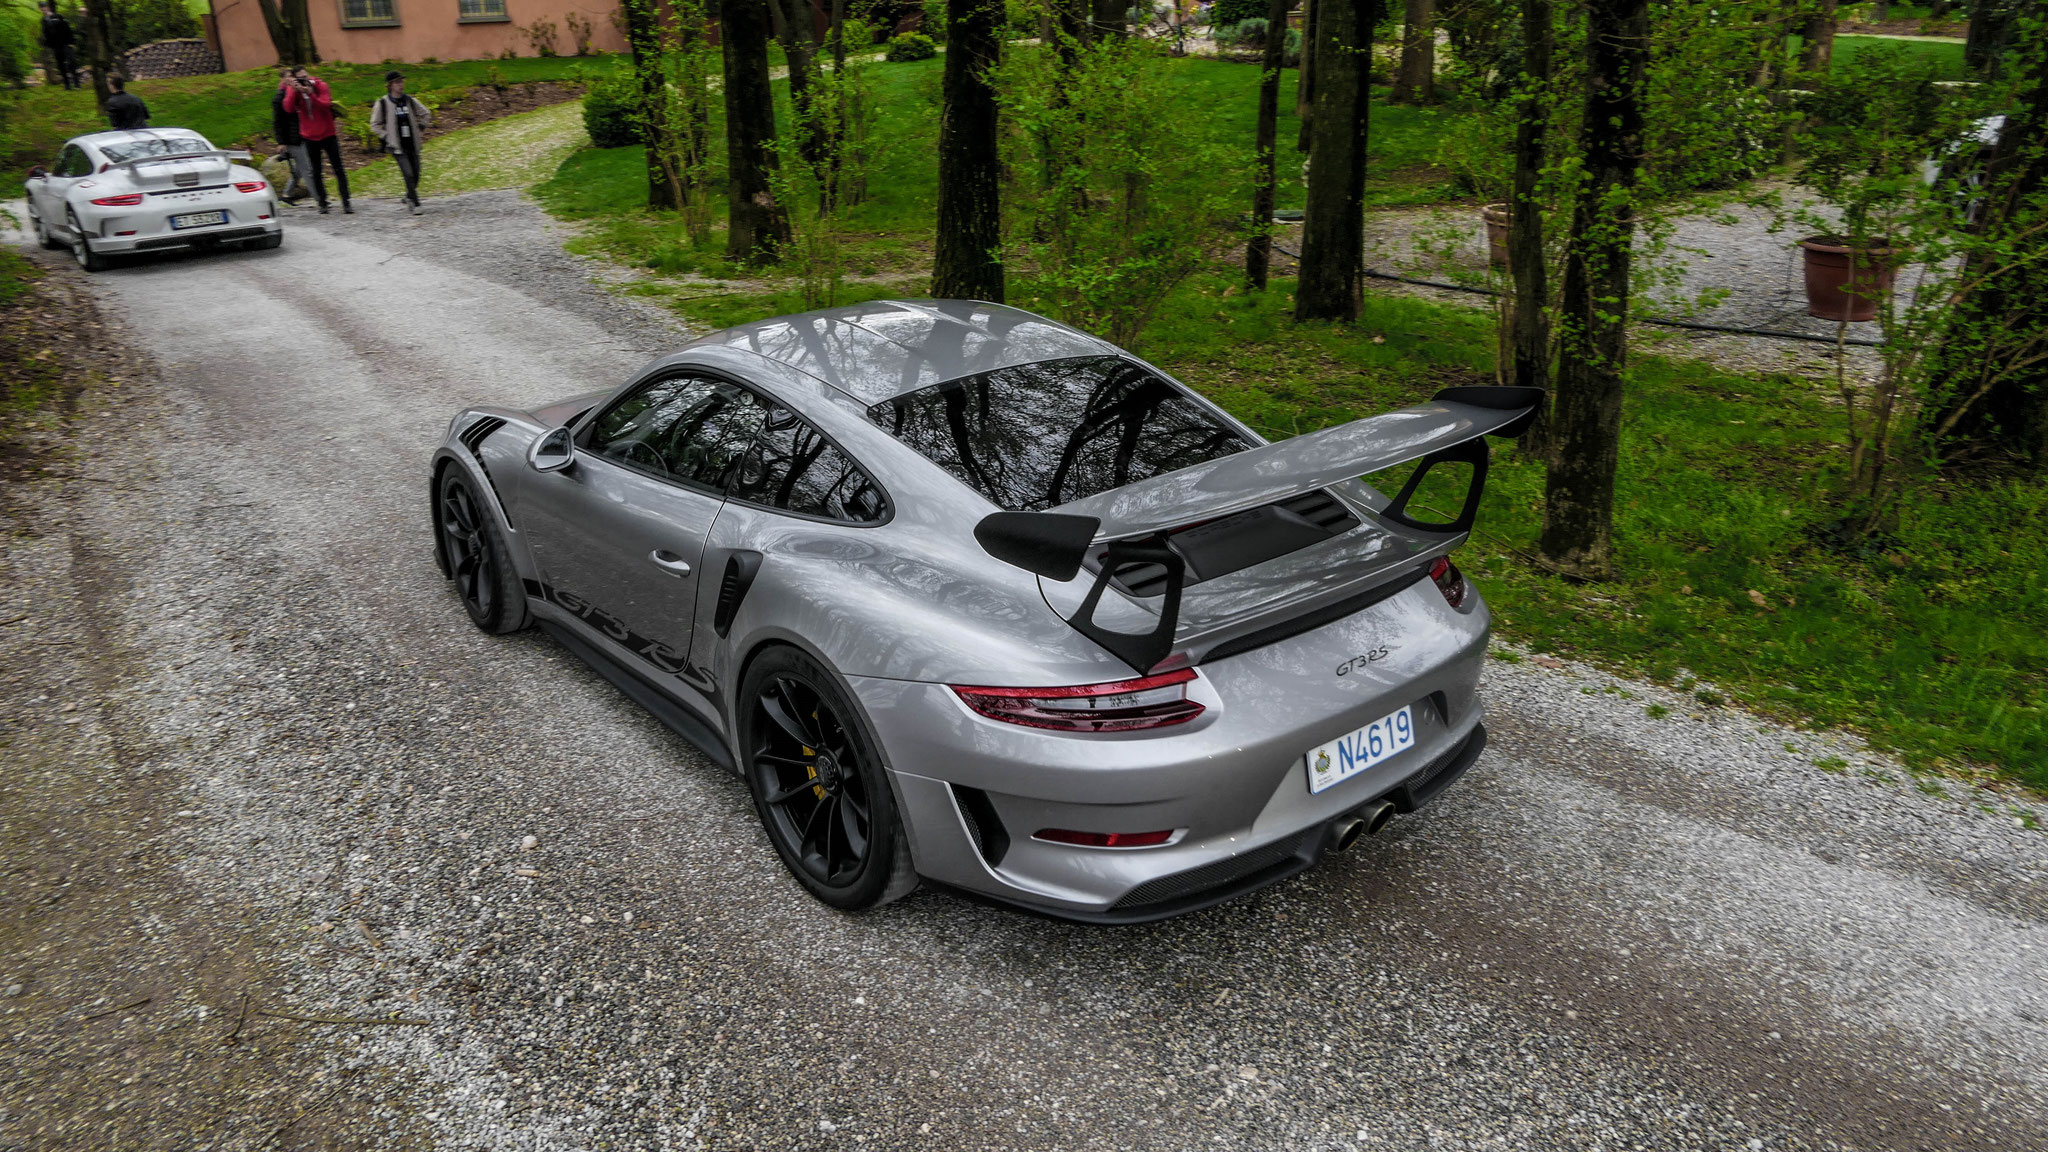 Porsche 911 991.2 GT3 RS - N4619 (AND)